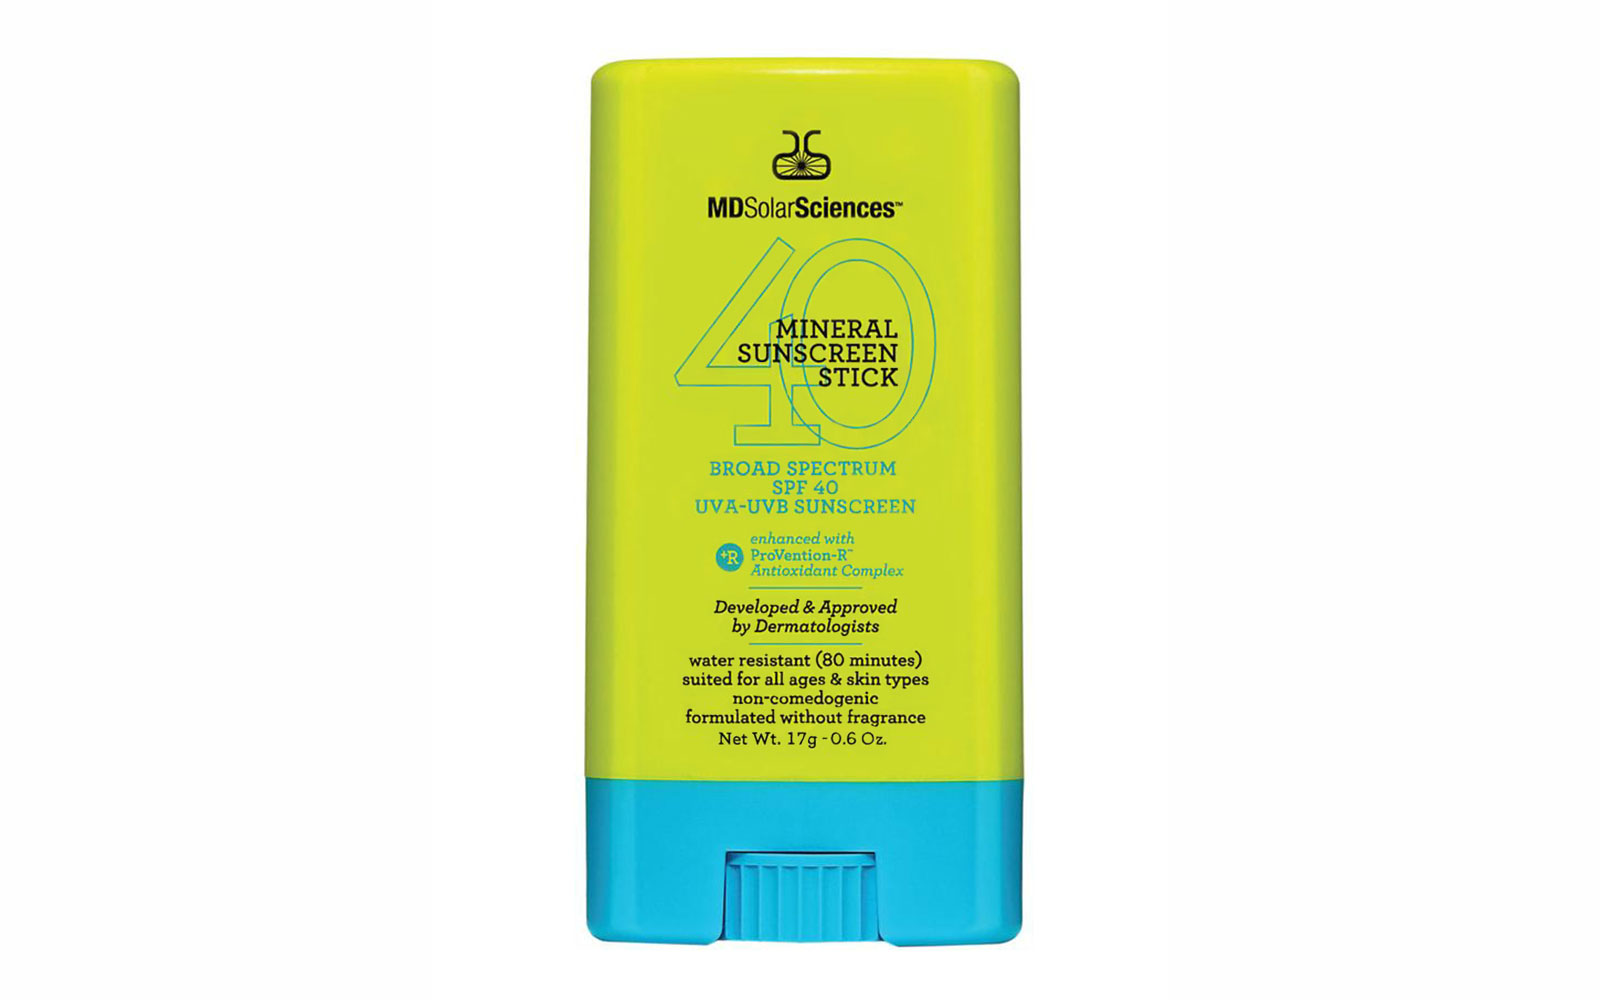 19 Liquid-Free Beauty Products for a Spill-Proof Carry-On: MD Solar Sciences Mineral Sunscreen Stick